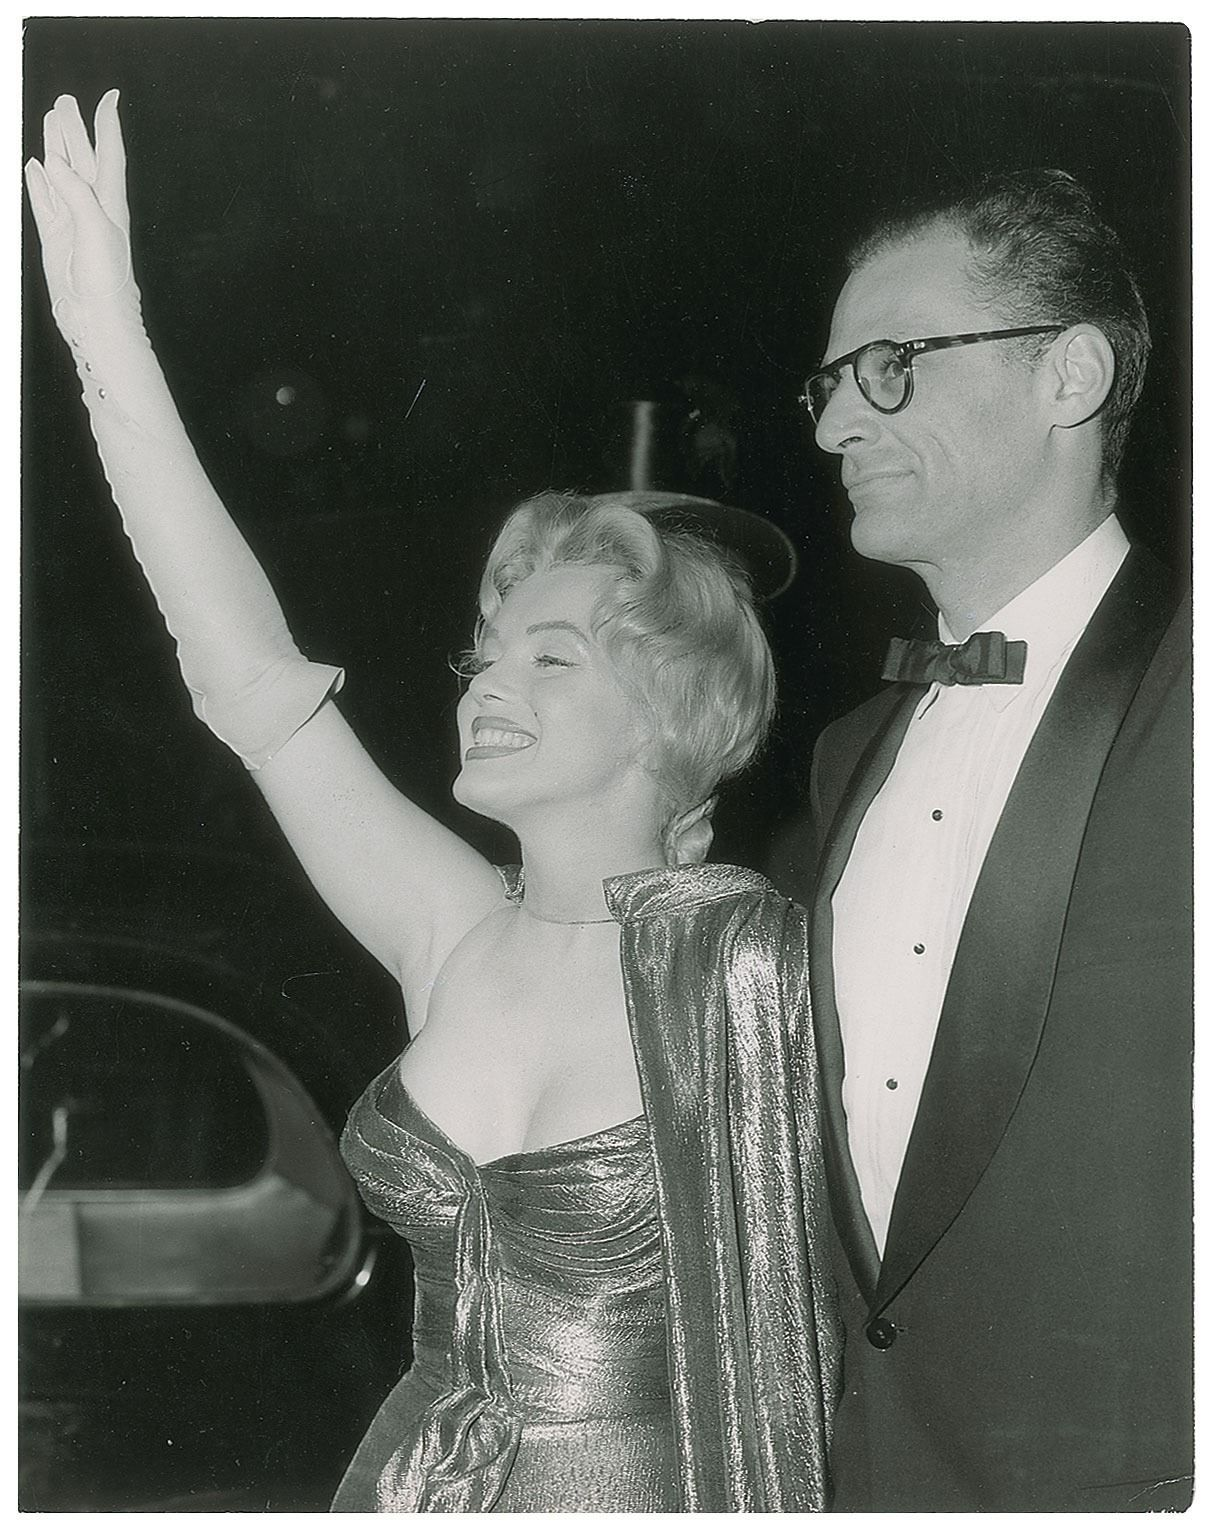 Marilyn And Arthur Miller At The Royal Film Premiere Of The Battle